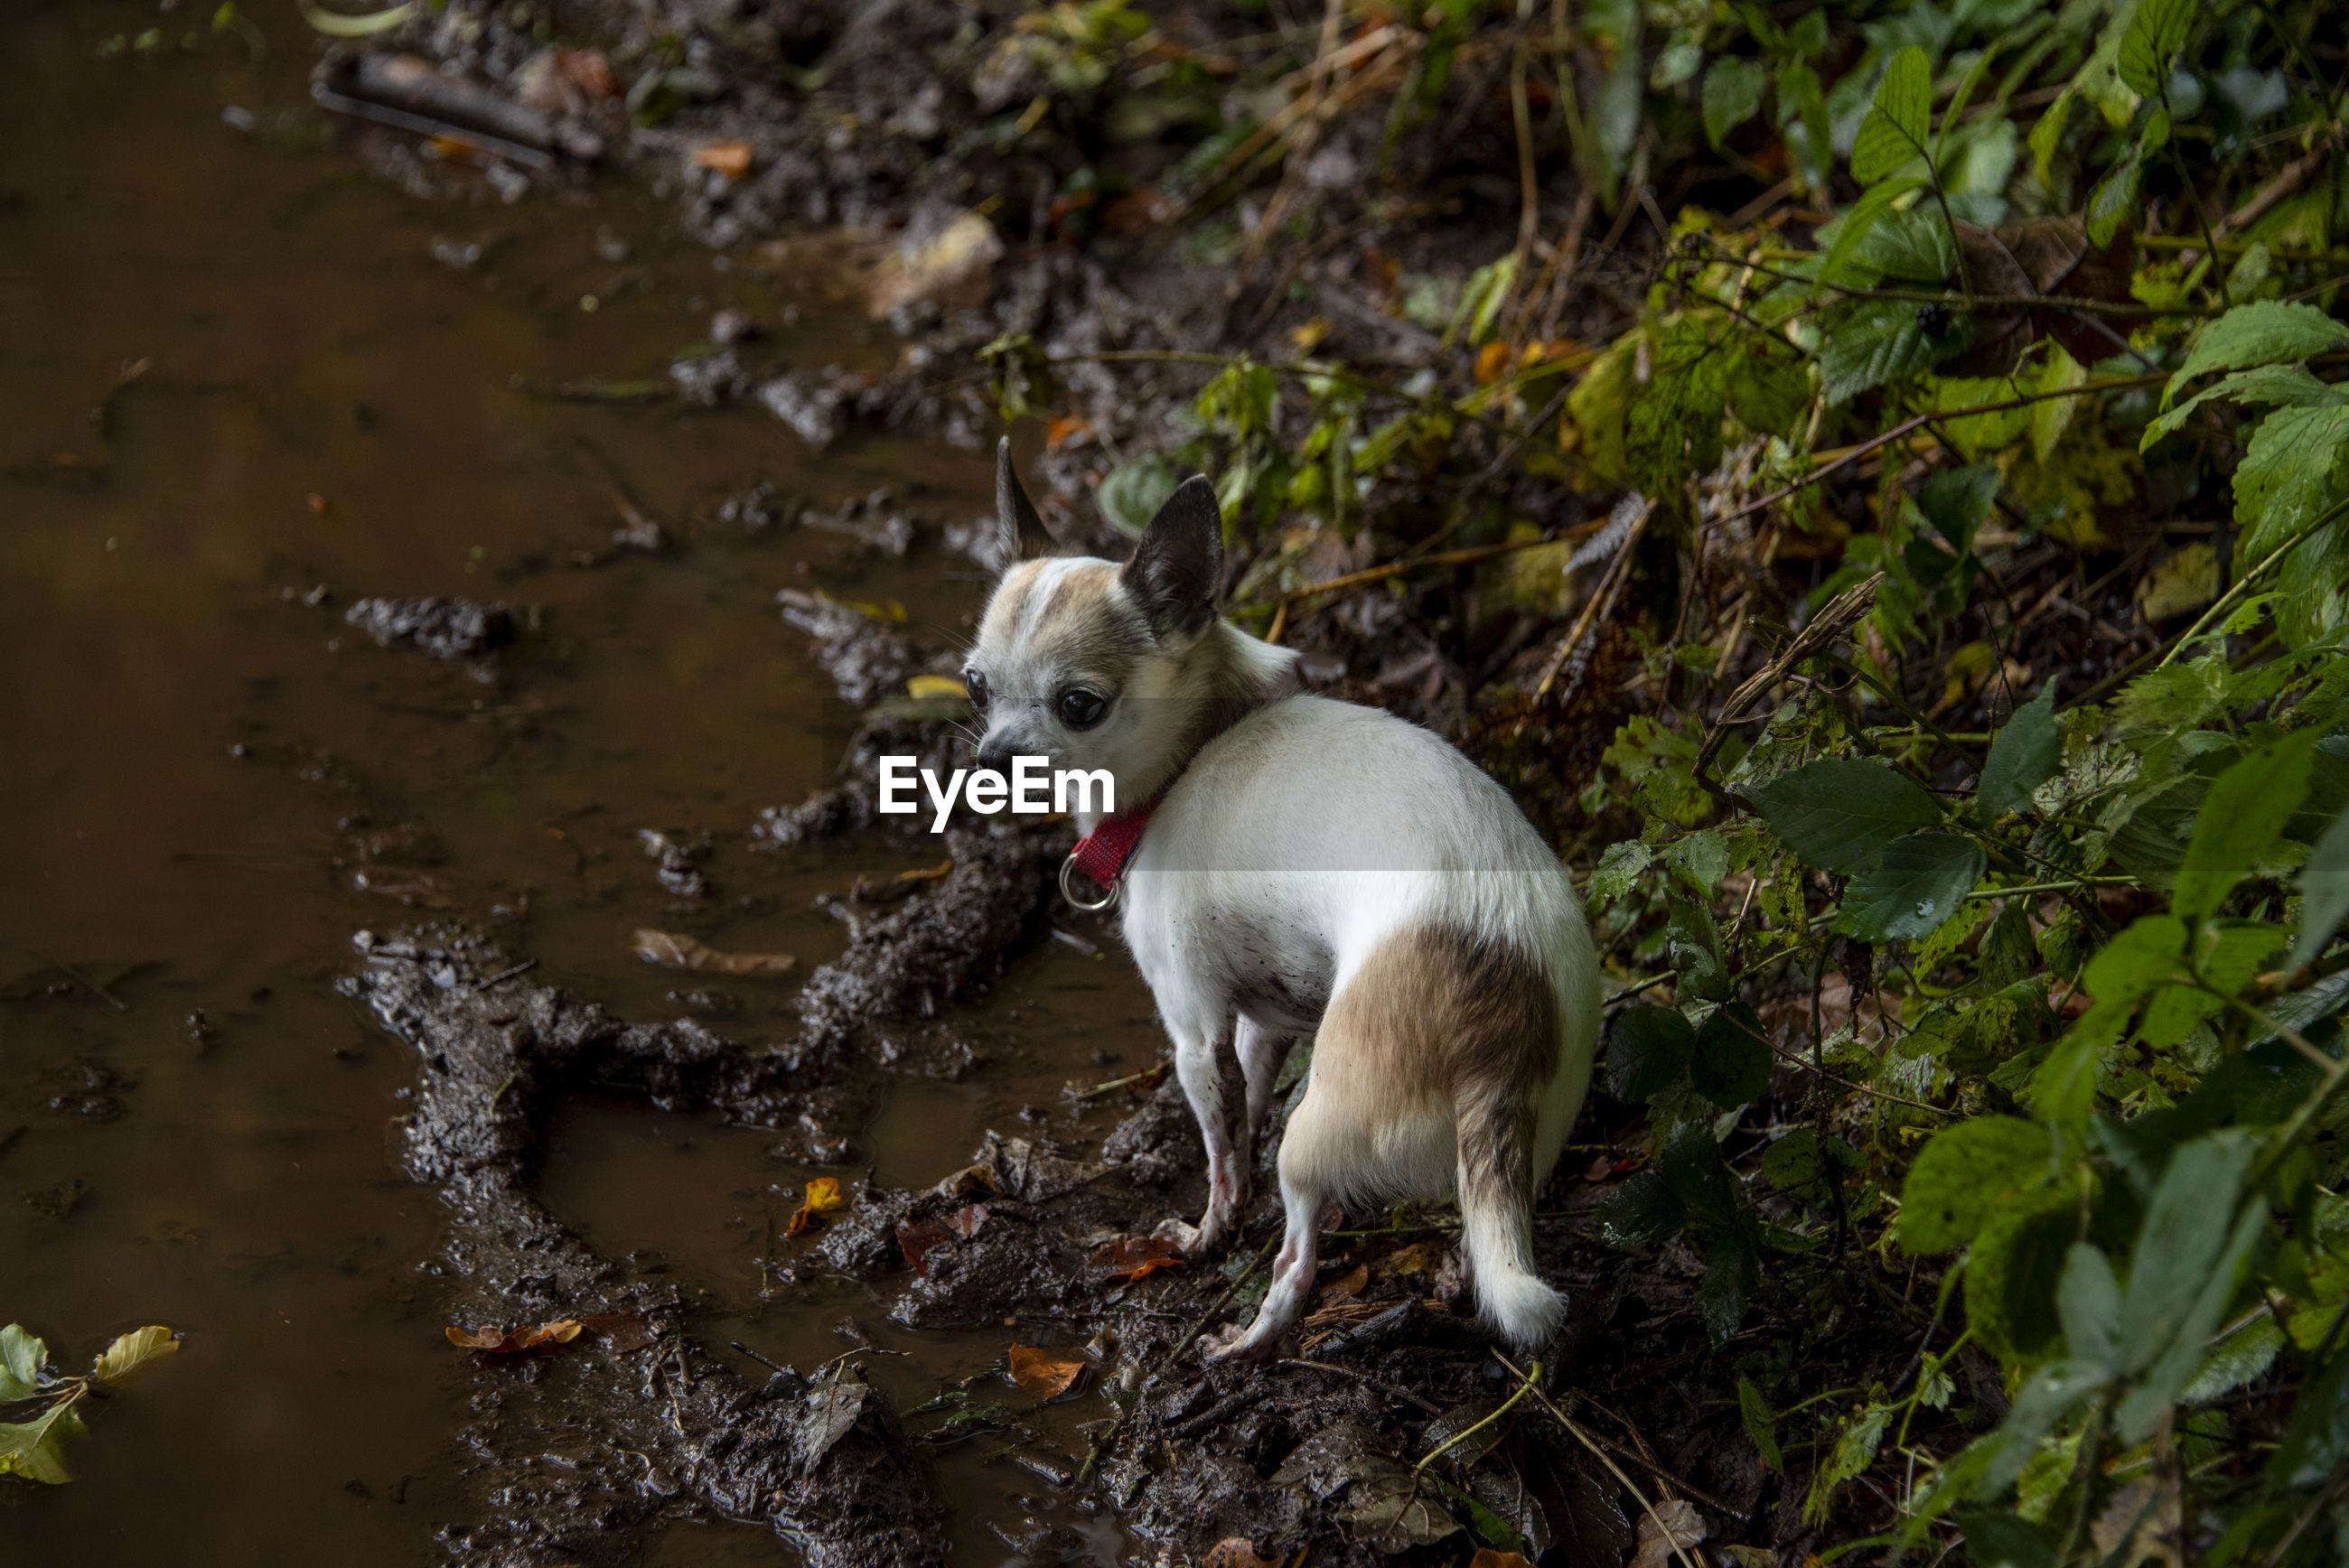 Dog standing on edge of water